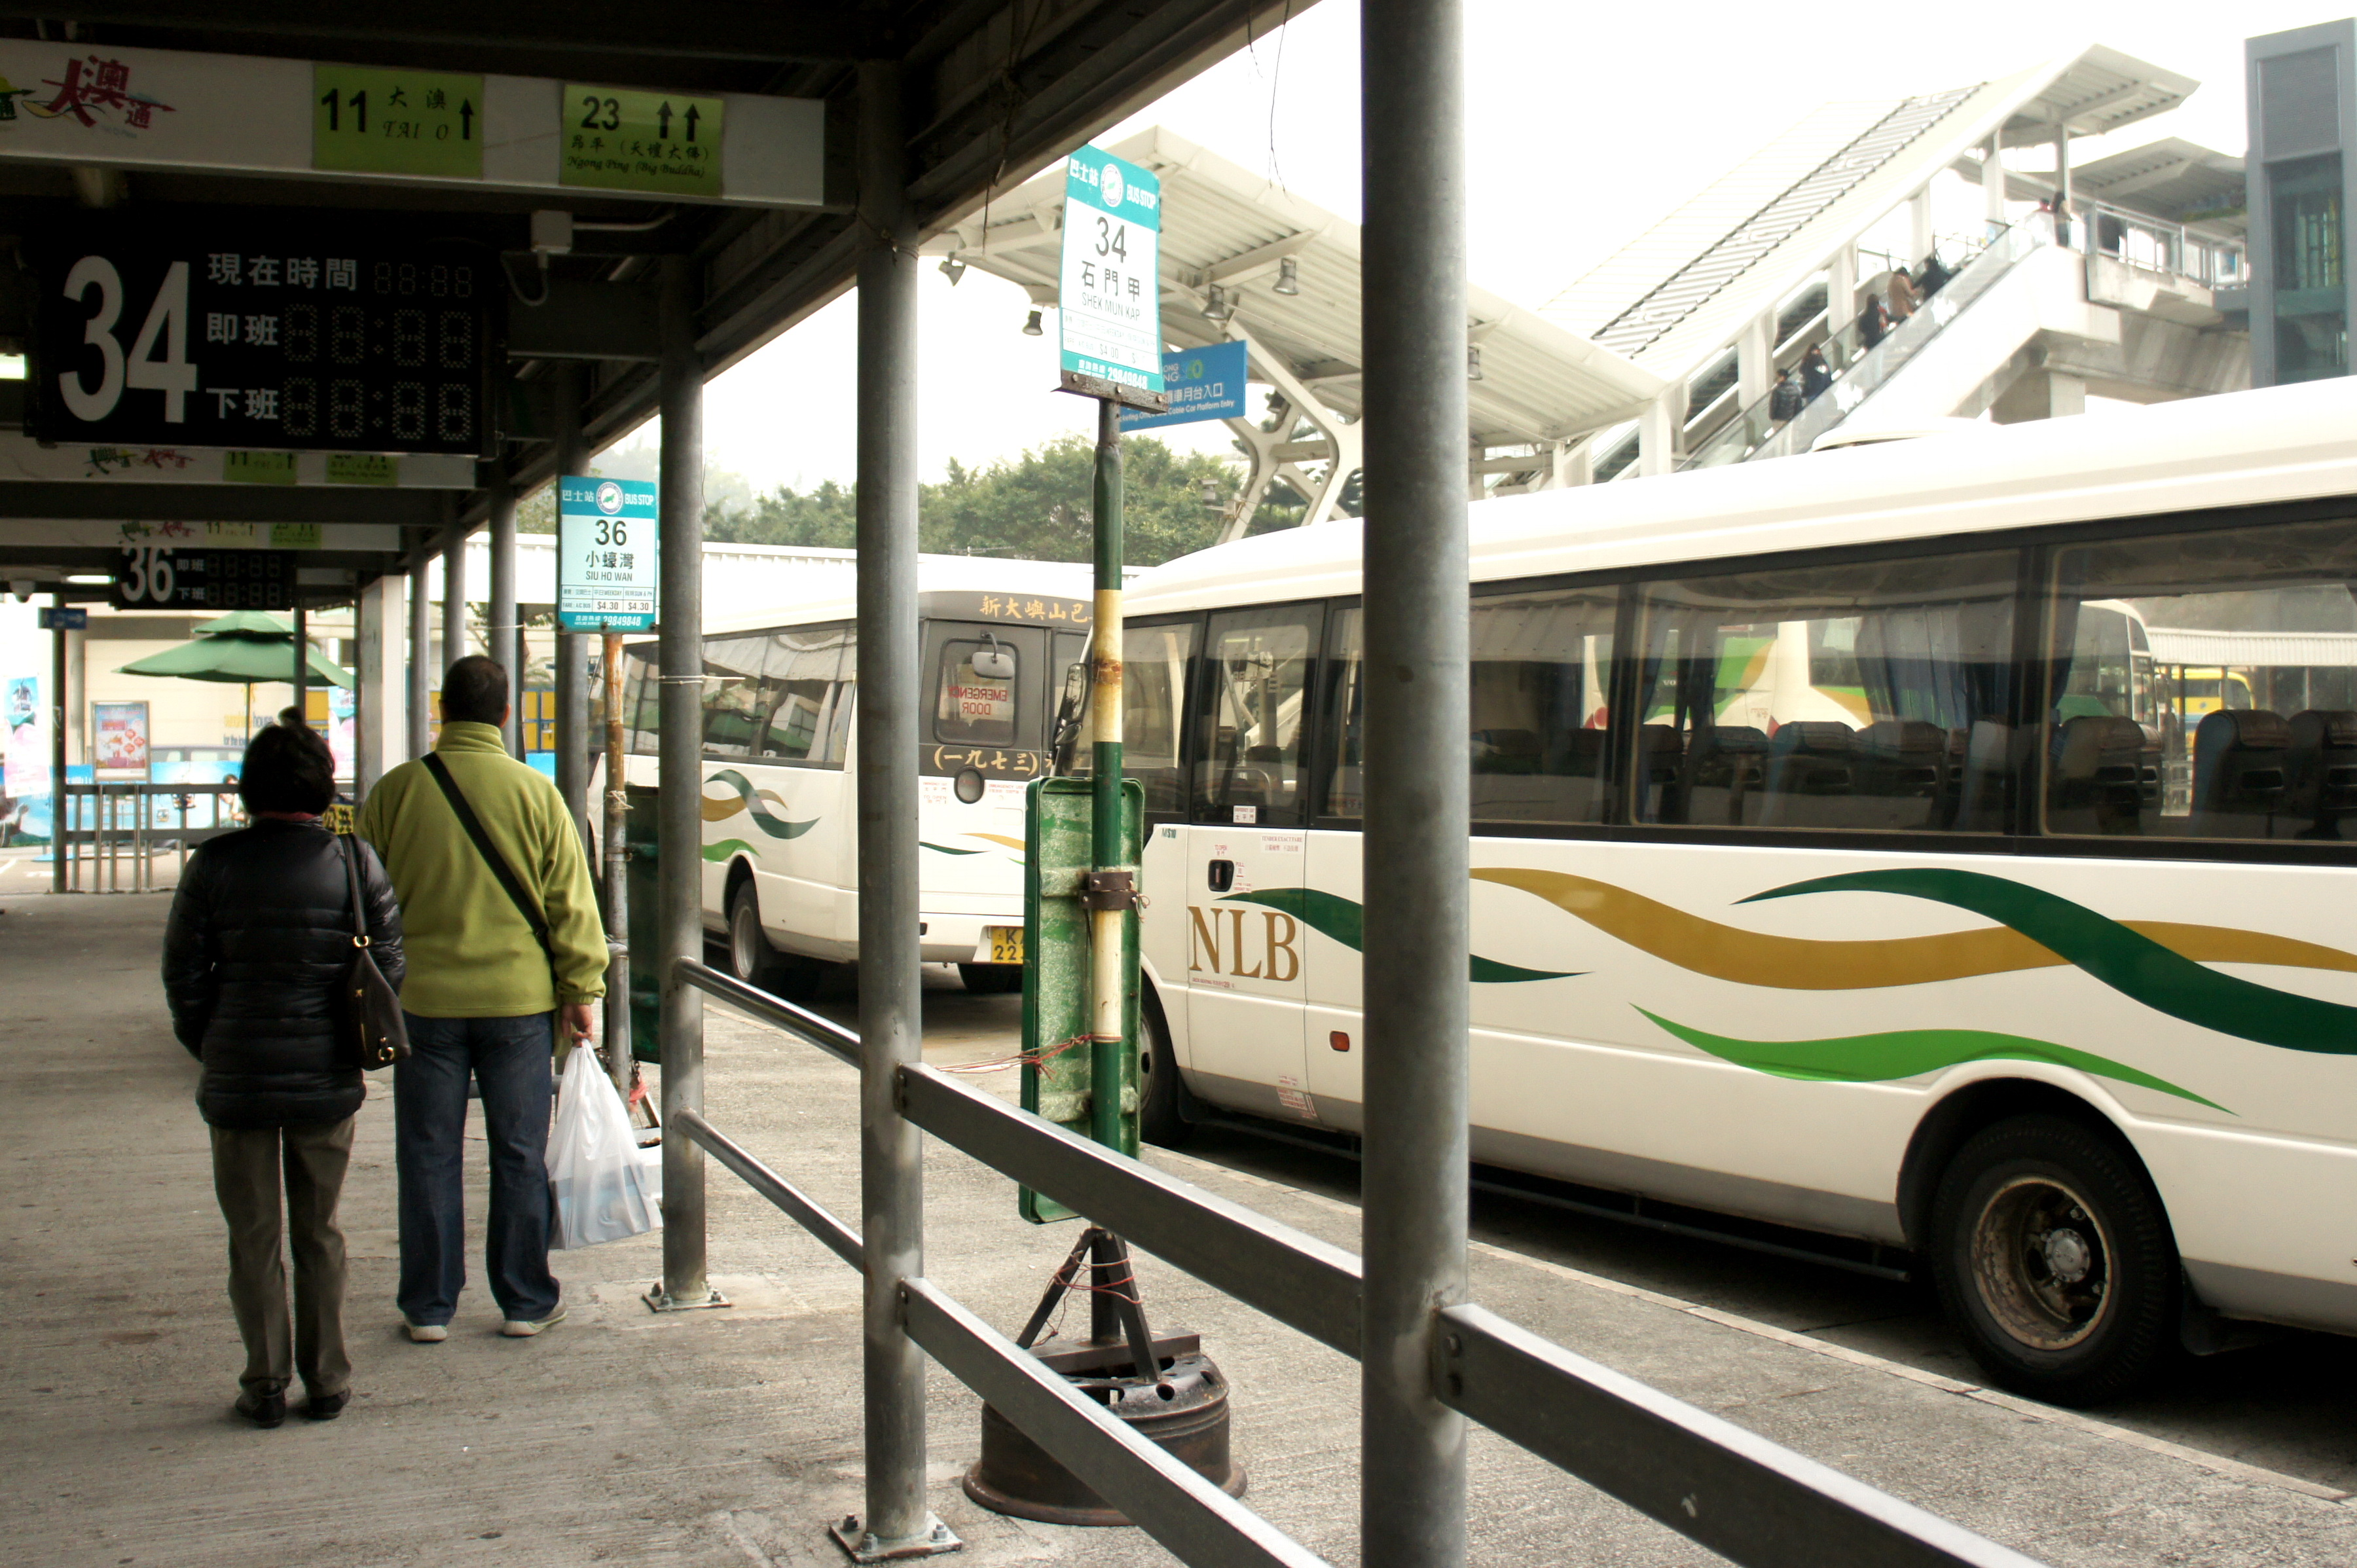 Hong Kong's KMB looking to spend HK$200 million on seat belts for older buses